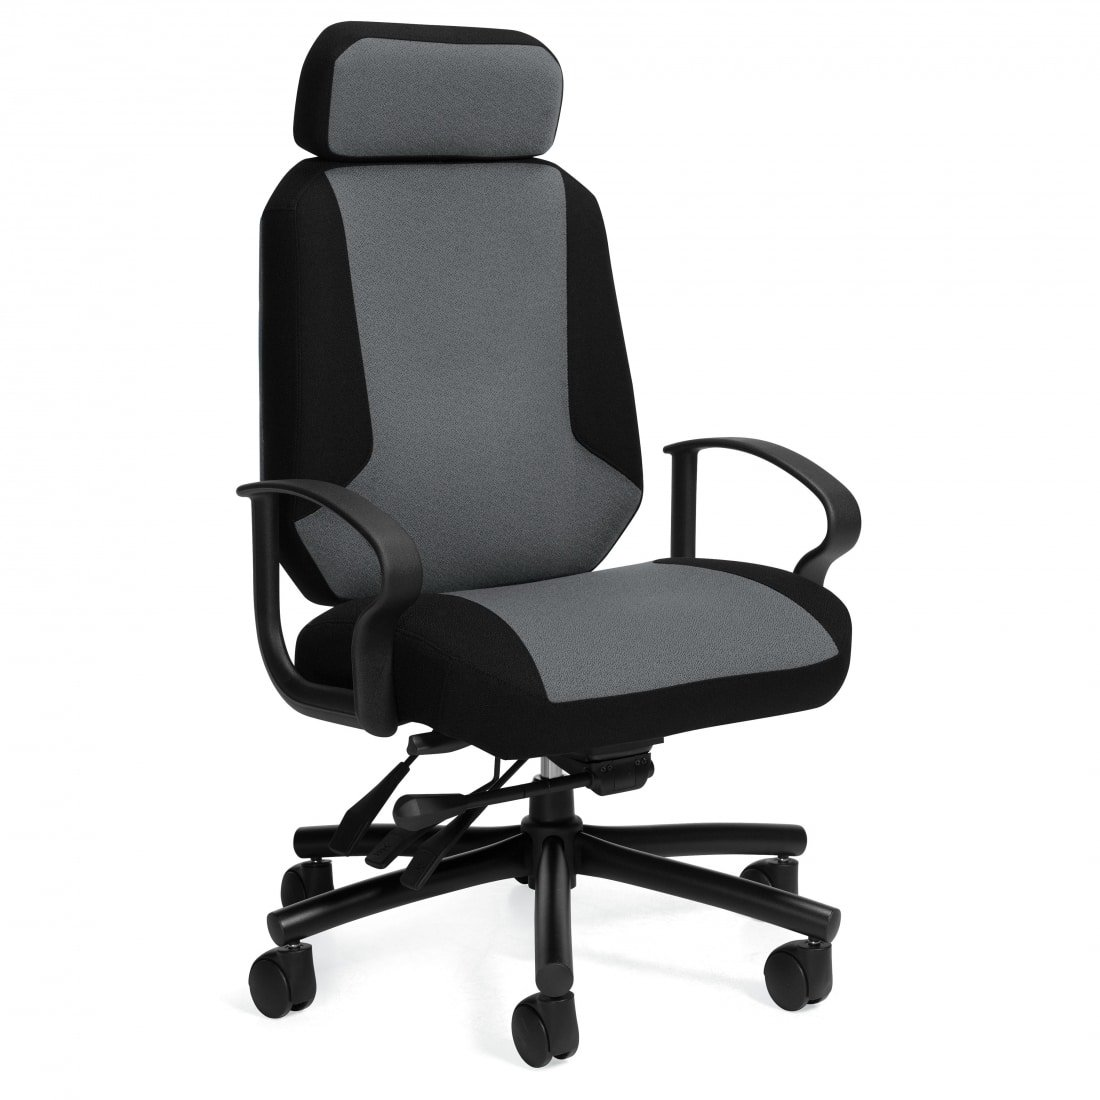 Robust Heavy Duty 24 Hour Chair in Grey and Black Upholstery